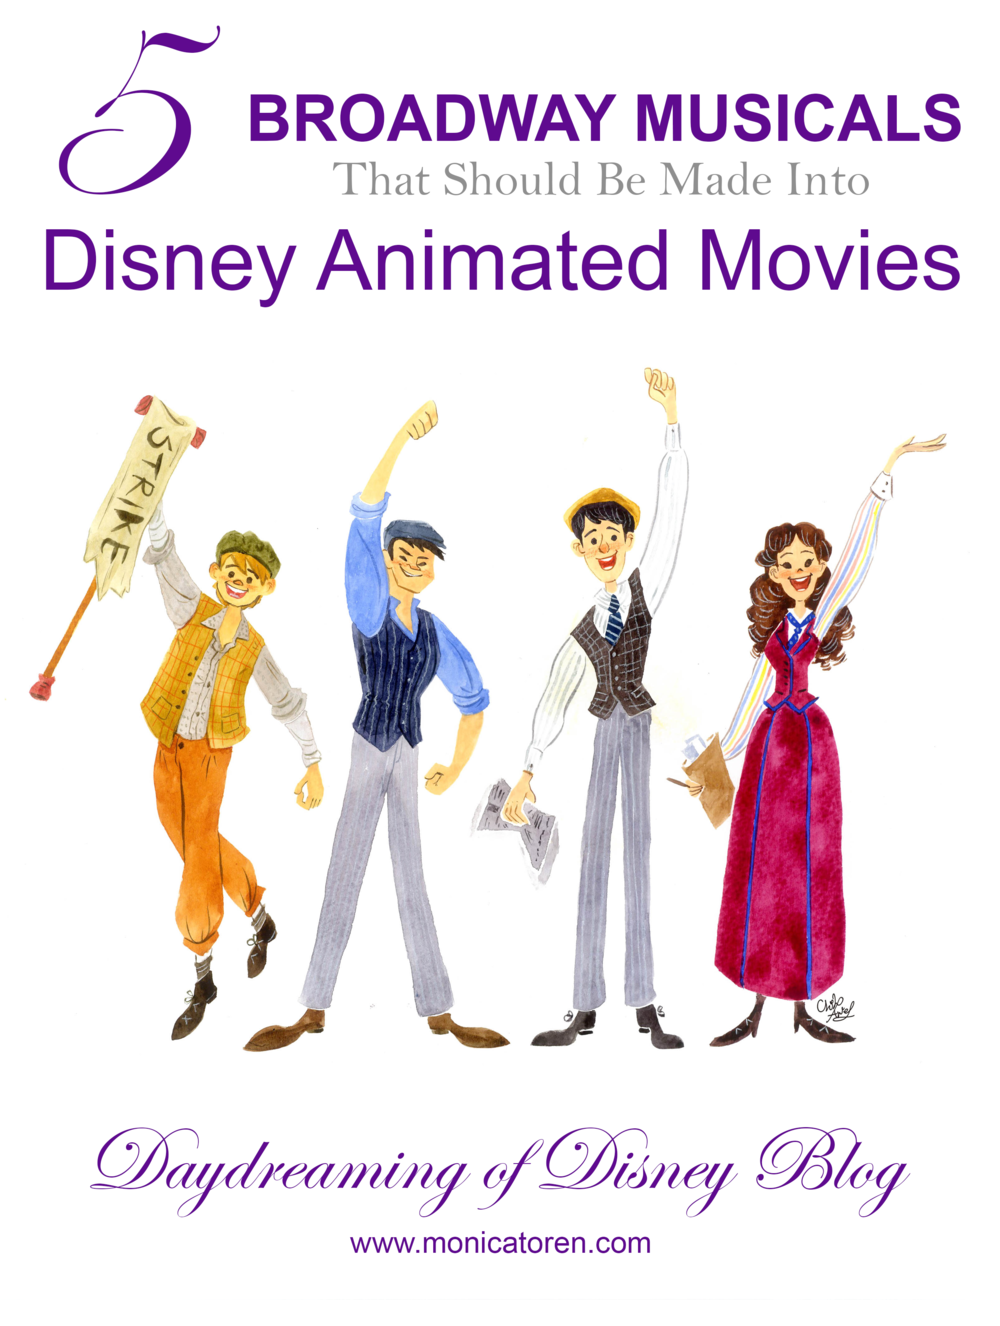 Daydreaming of Disney Blog - 5 Broadway Musicals That Should Be Made Into Disney Animated Movies - http://www.monicatoren.com #disney #broadway #frozen #frozenbroadway